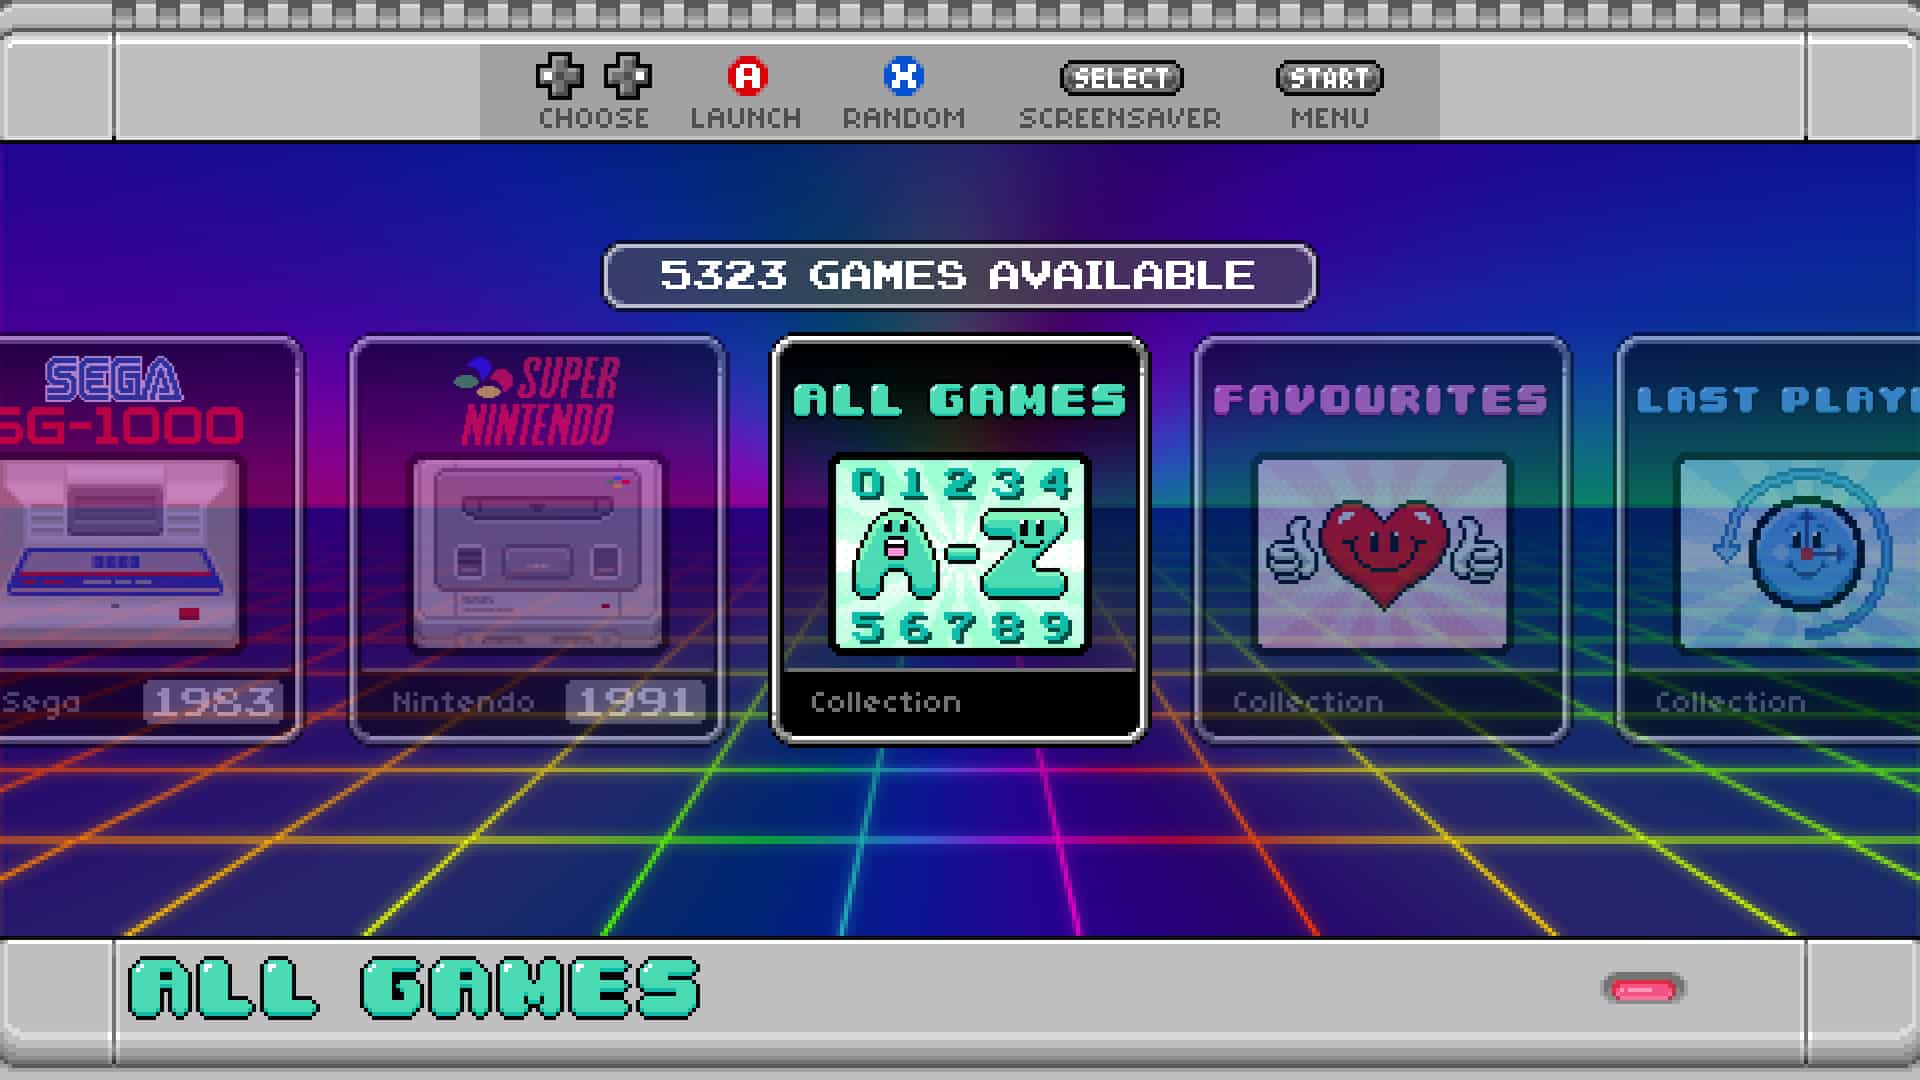 The Retro Player Menu All Games